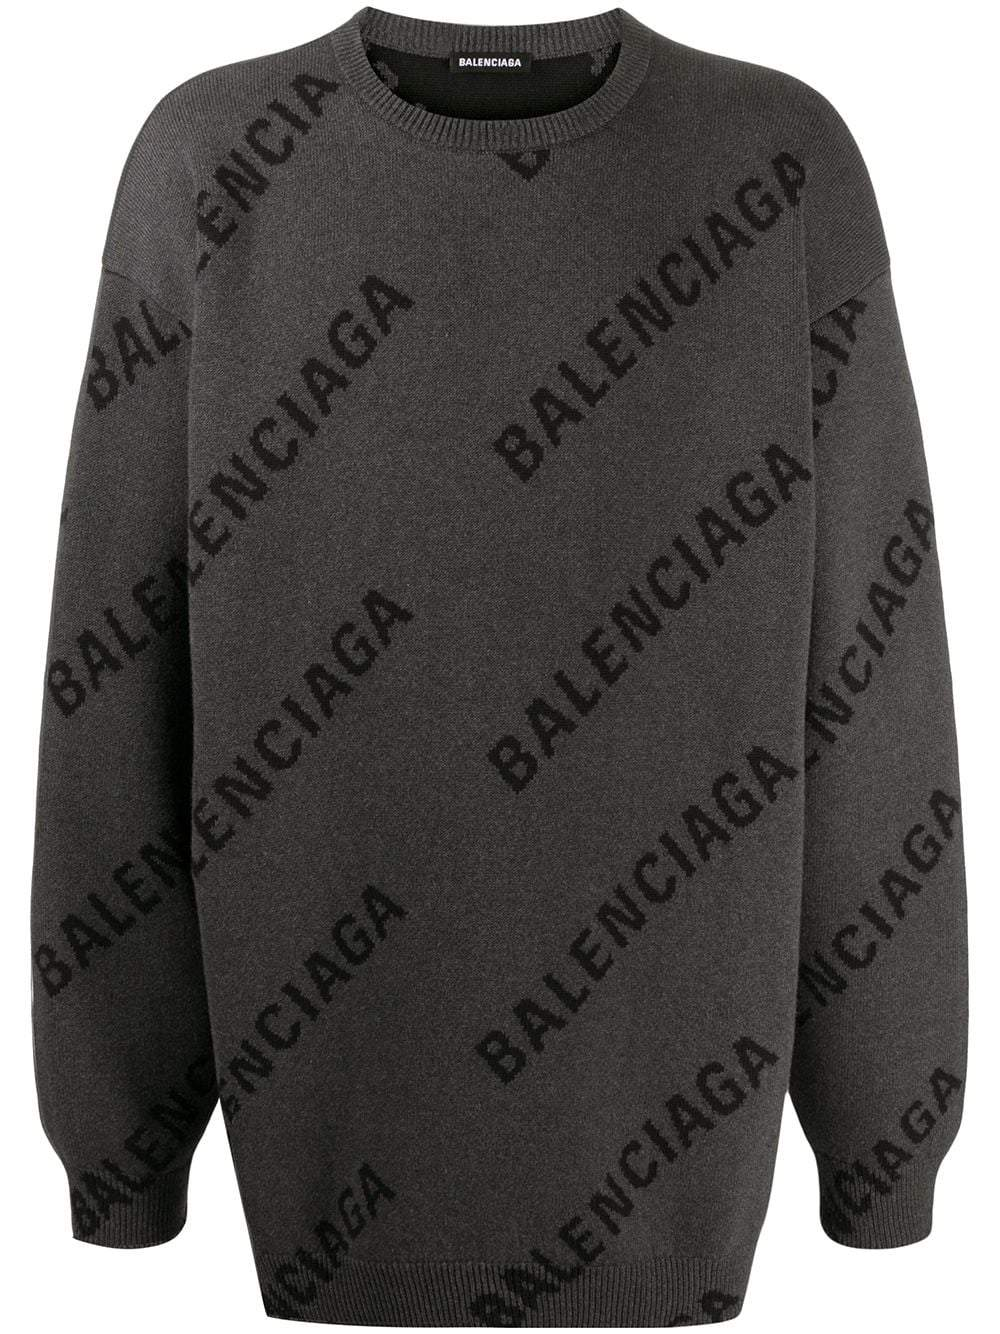 BALENCIAGA All Over Logo Knitted Sweatshirt Grey - Maison De Fashion